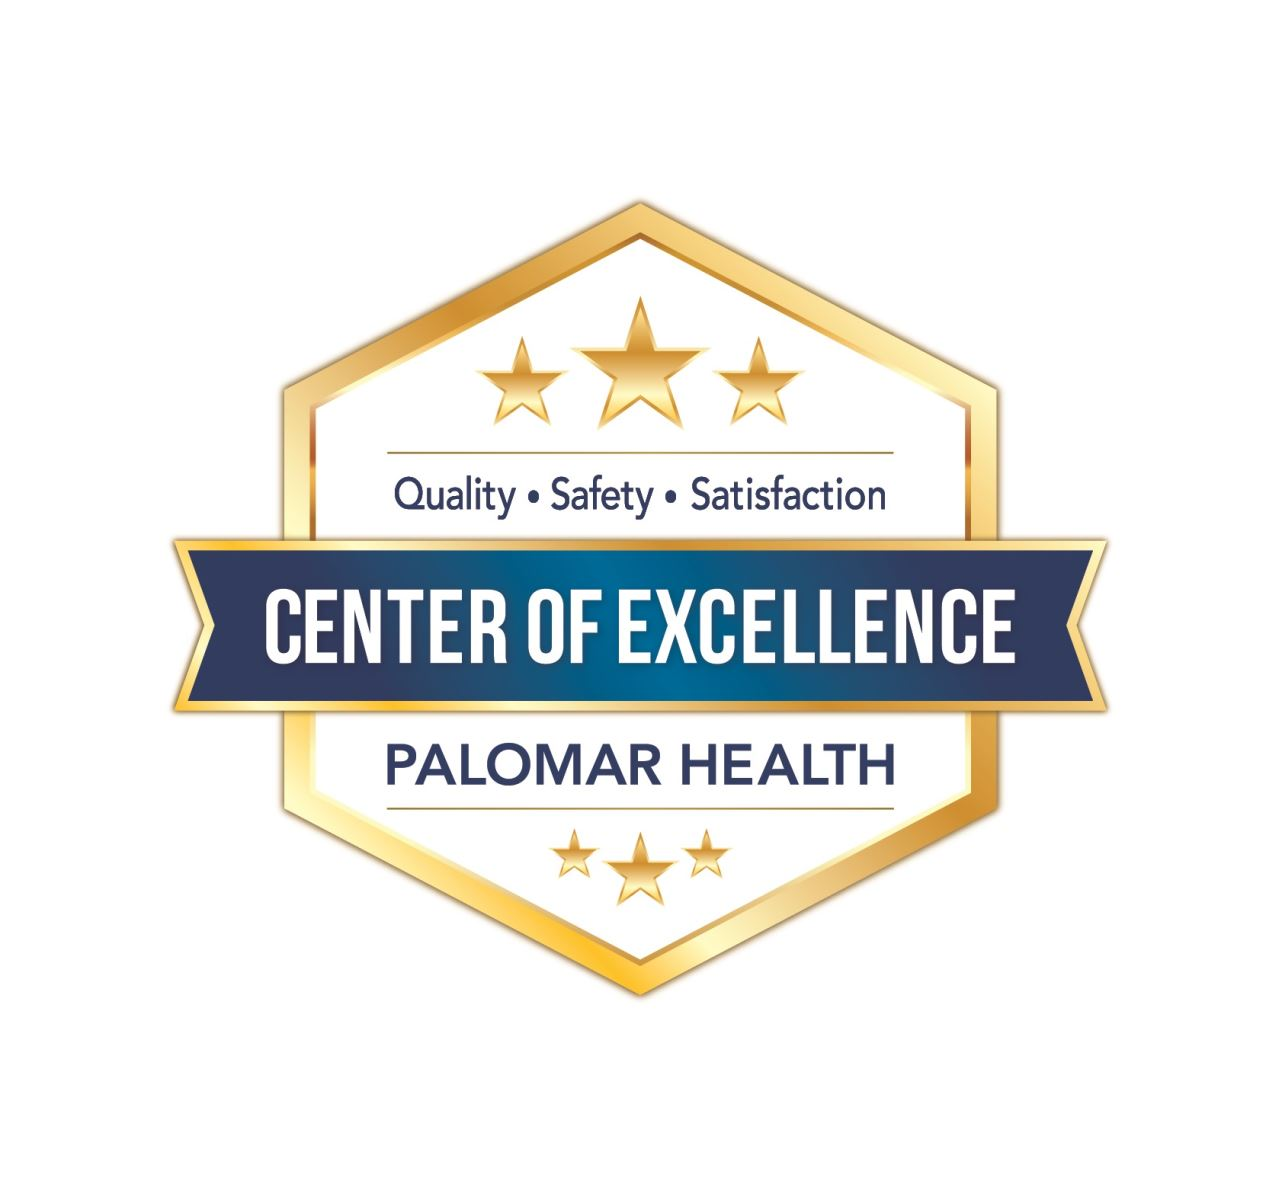 Palomar Health  Certificate of Excellence Award